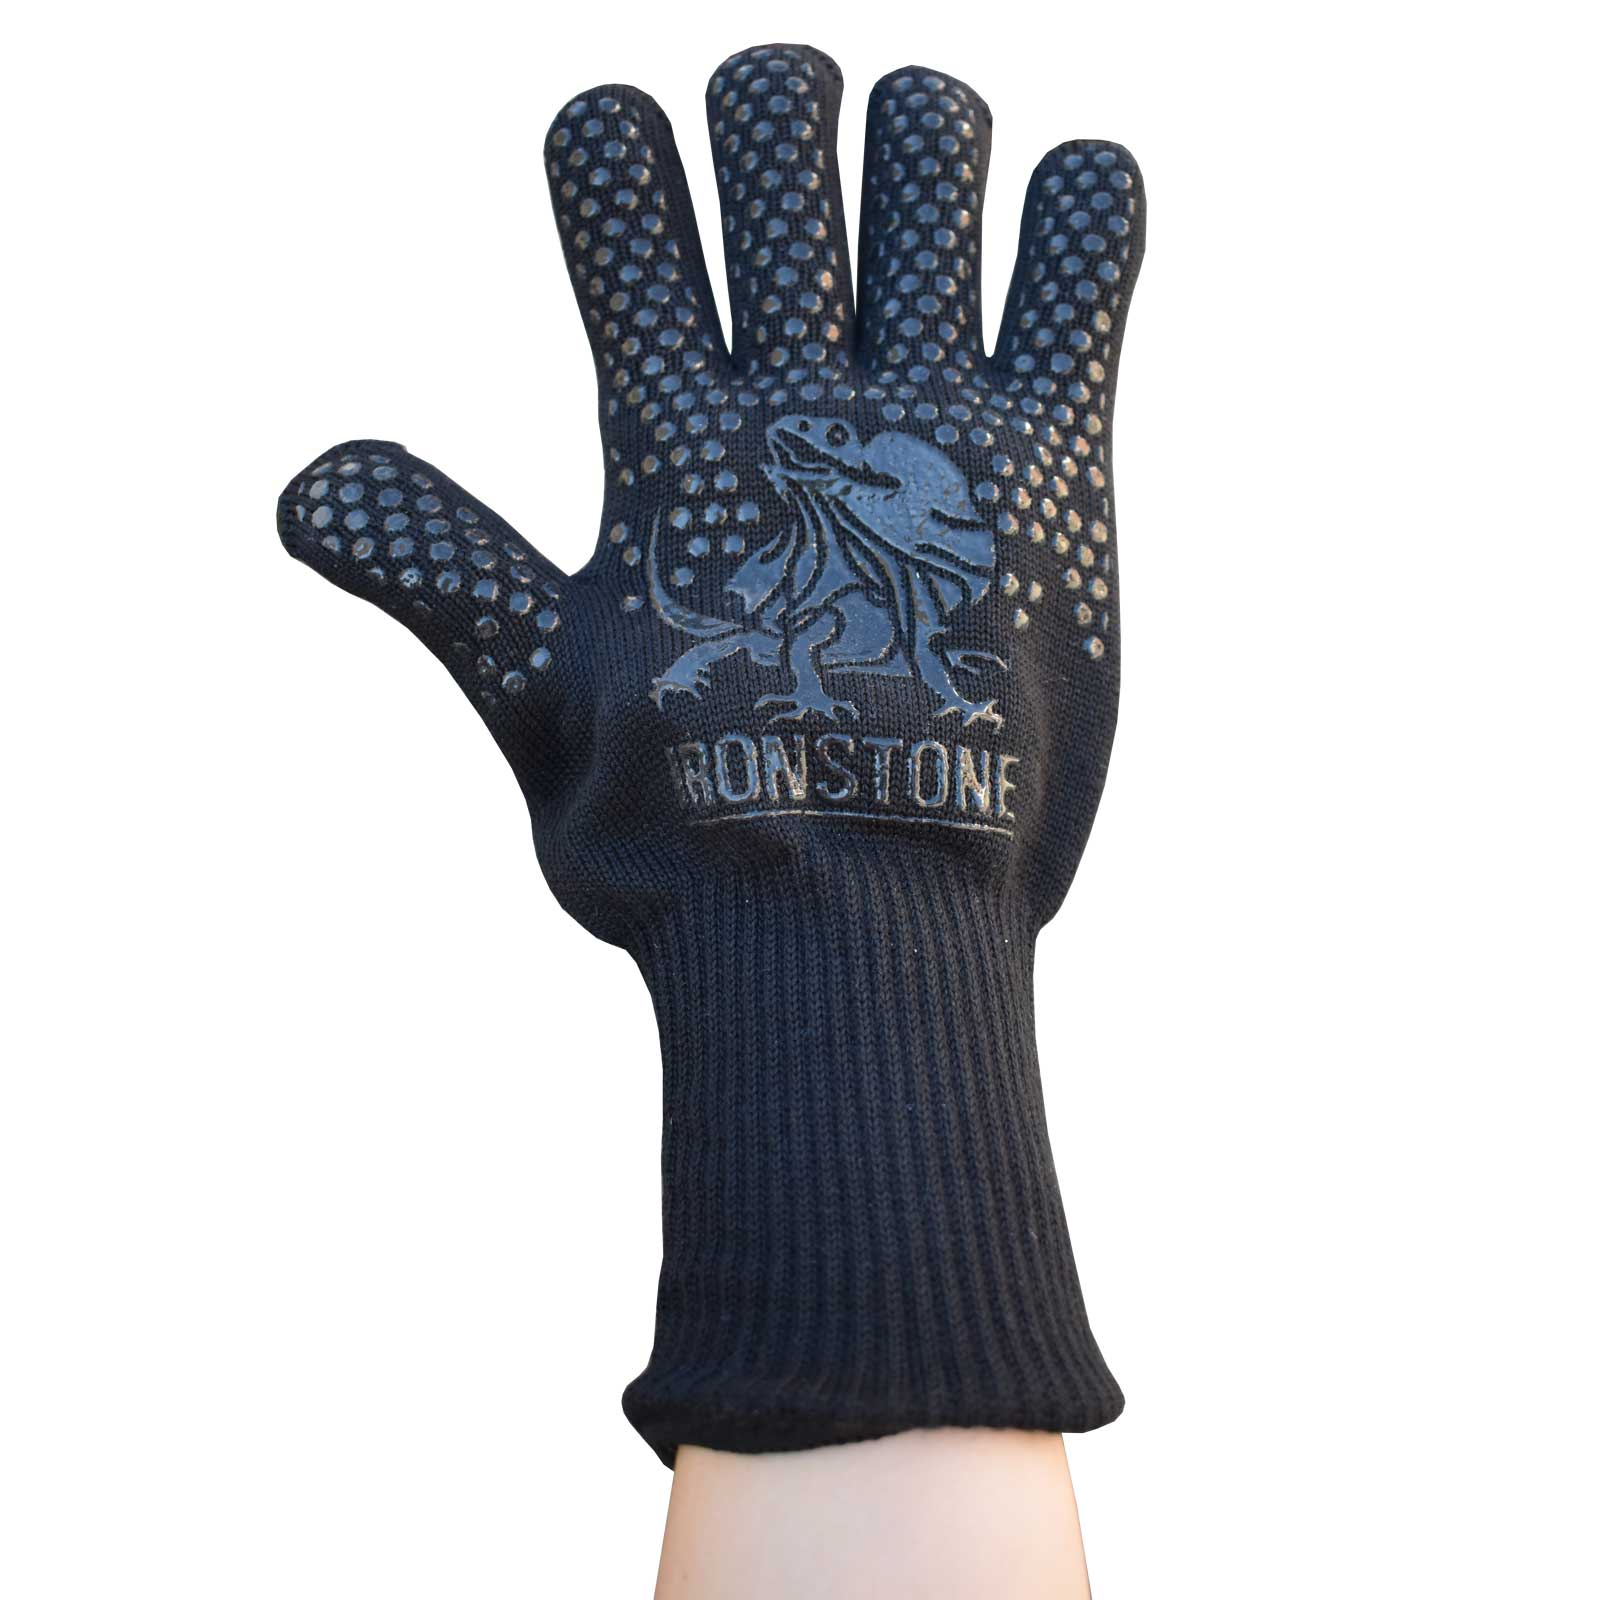 Ironstone-gloves-black